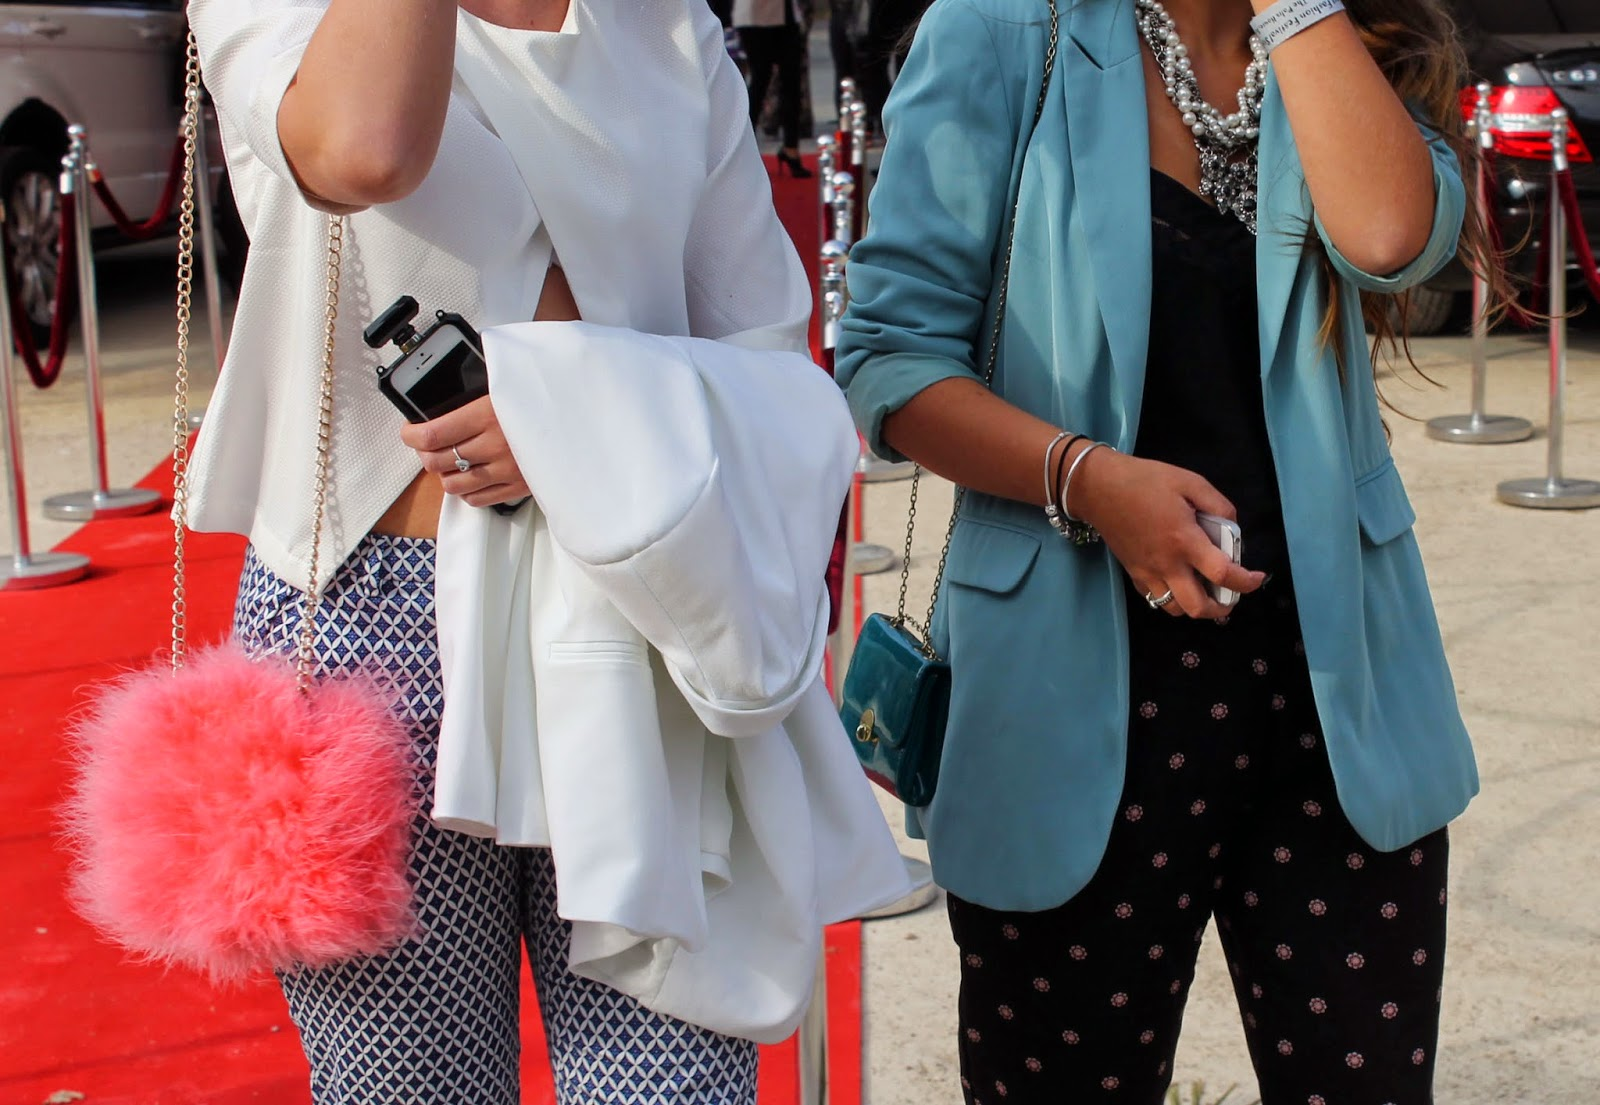 north west fashion festival liverpool streetstyle, novelty accessories